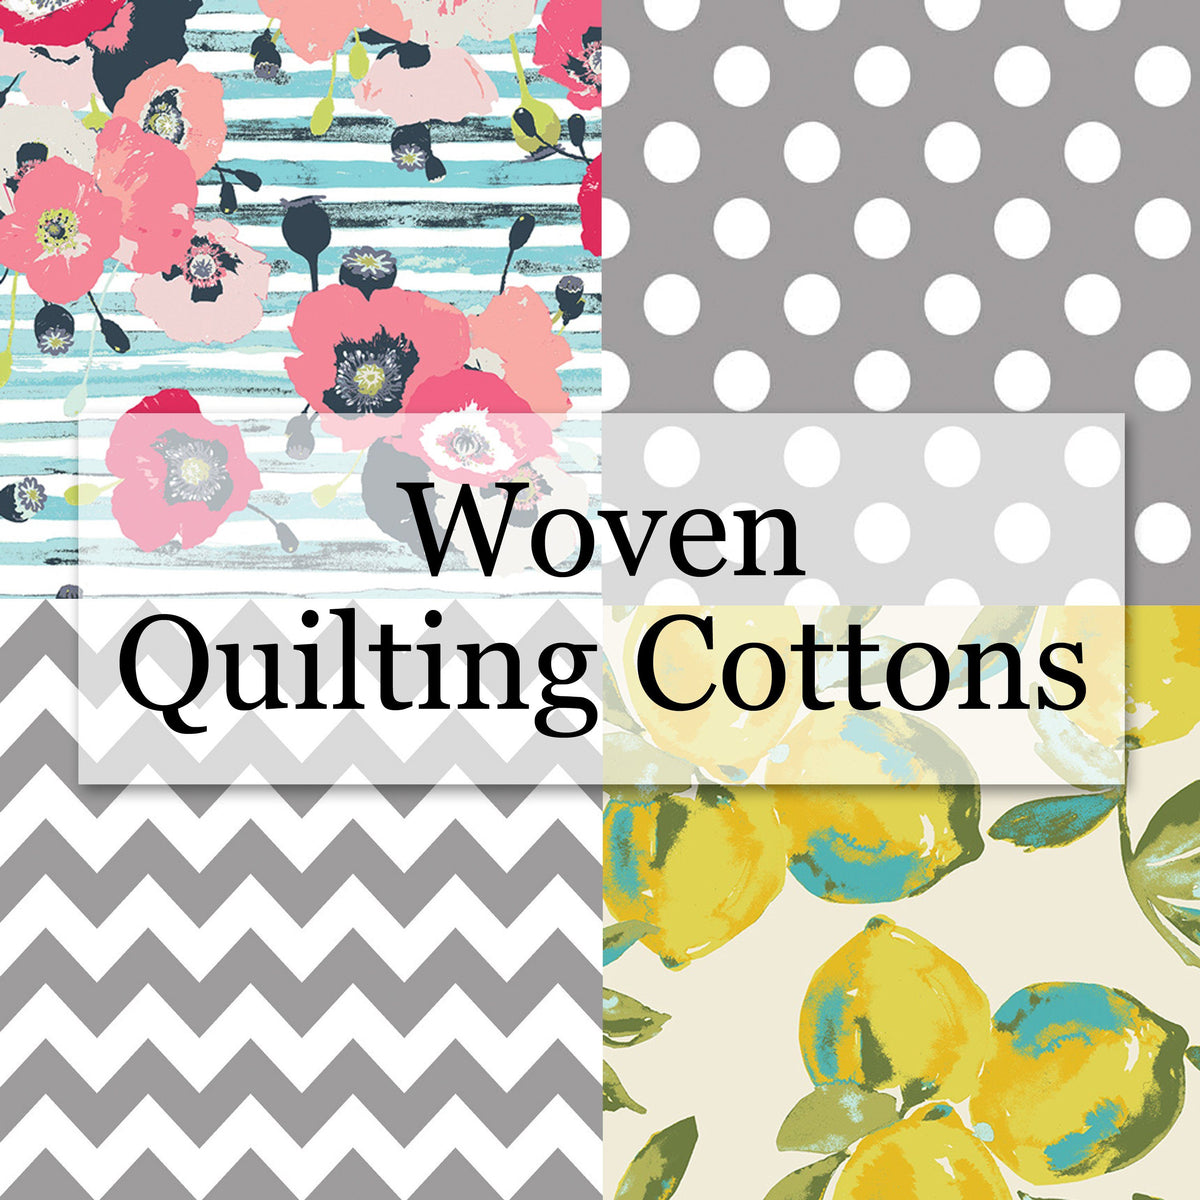 Woven Quilting Cottons